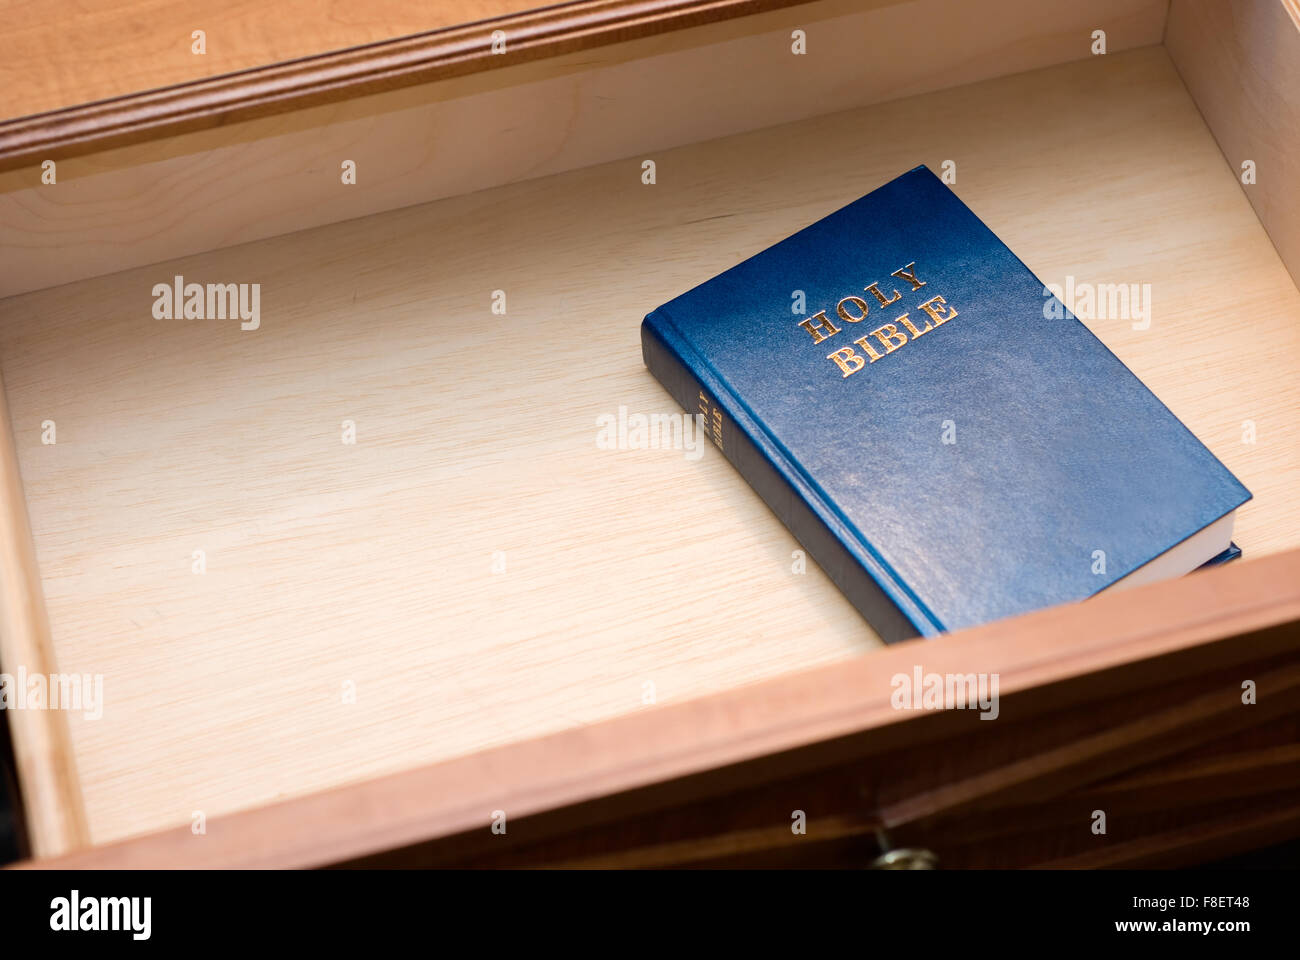 Holy Bible in a hotel room nightstand open drawer with copy space for adding text - Stock Image